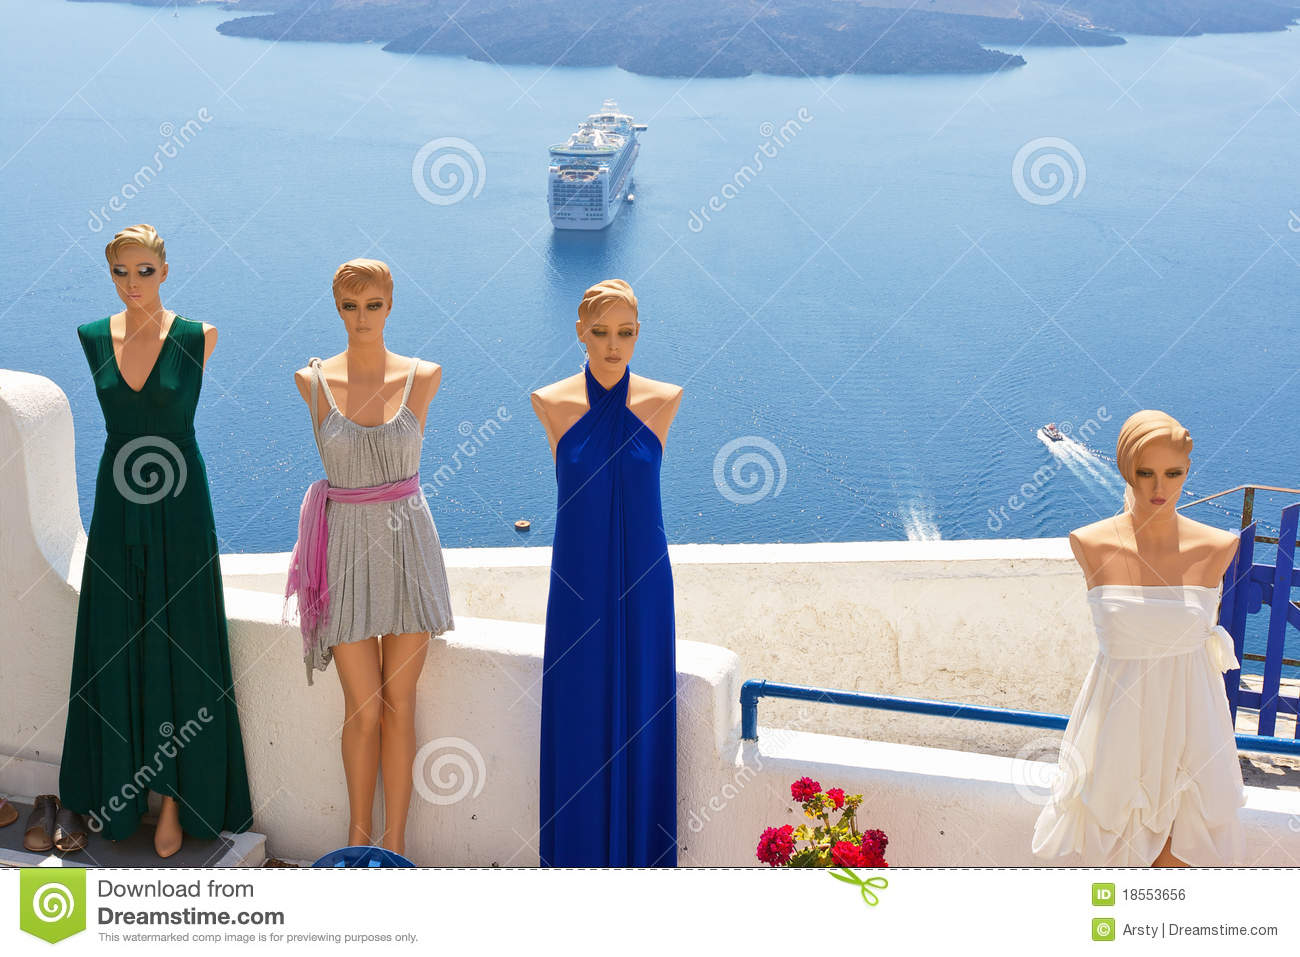 Dress Shop Santorini Greece Royalty Free Stock Image